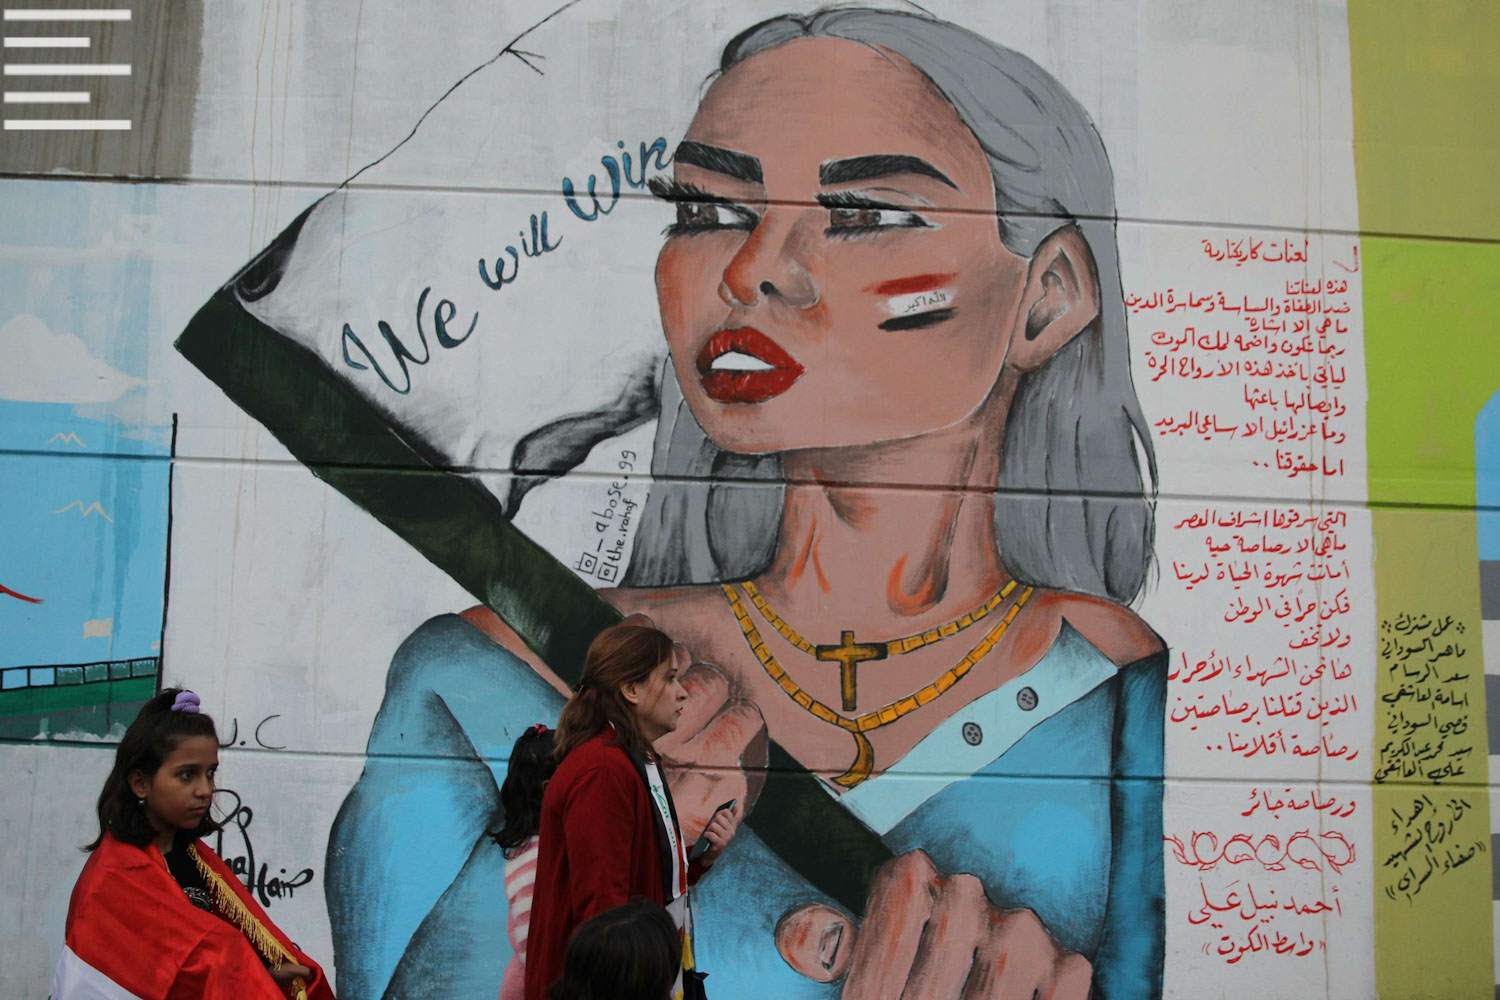 Iraqi protesters walk past a mural bearing a portrait of a Christian woman with the Iraqi national flag painted on her cheek in Baghdad's Tahrir square, November 21. (AFP)